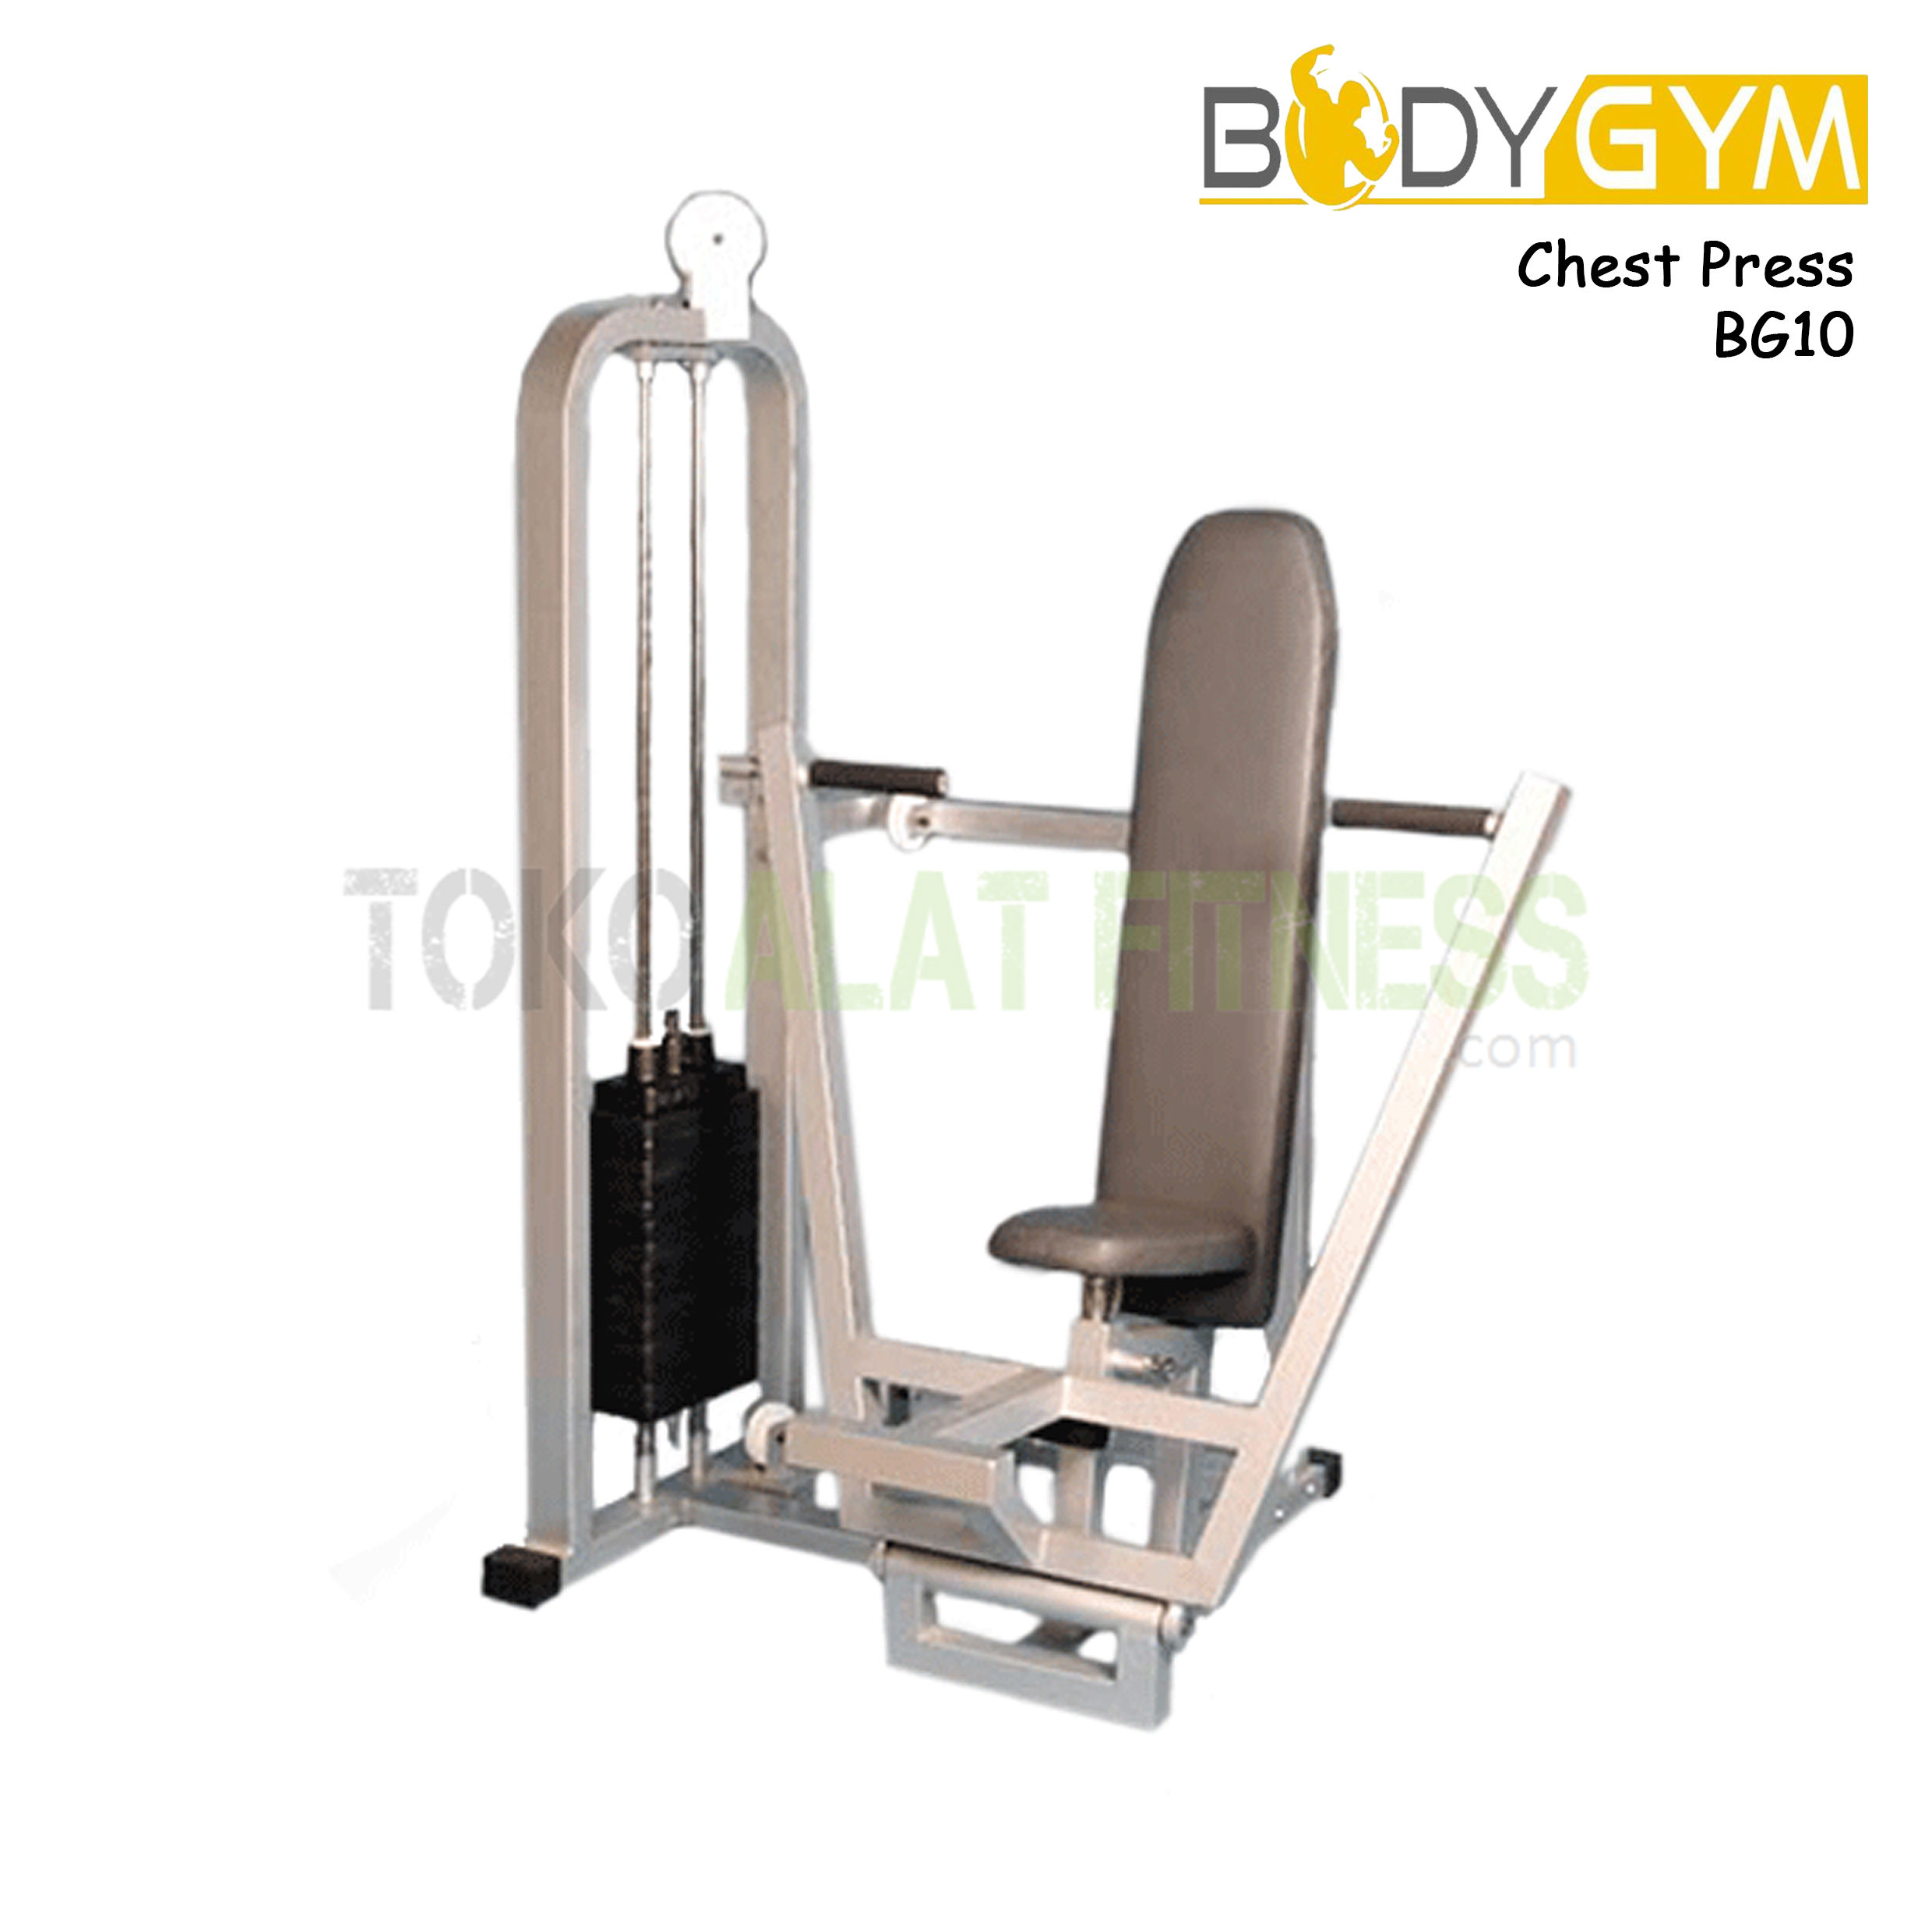 BG10 Chest Press 2 - Body Gym Chest Press ( Lokal ) - BG10